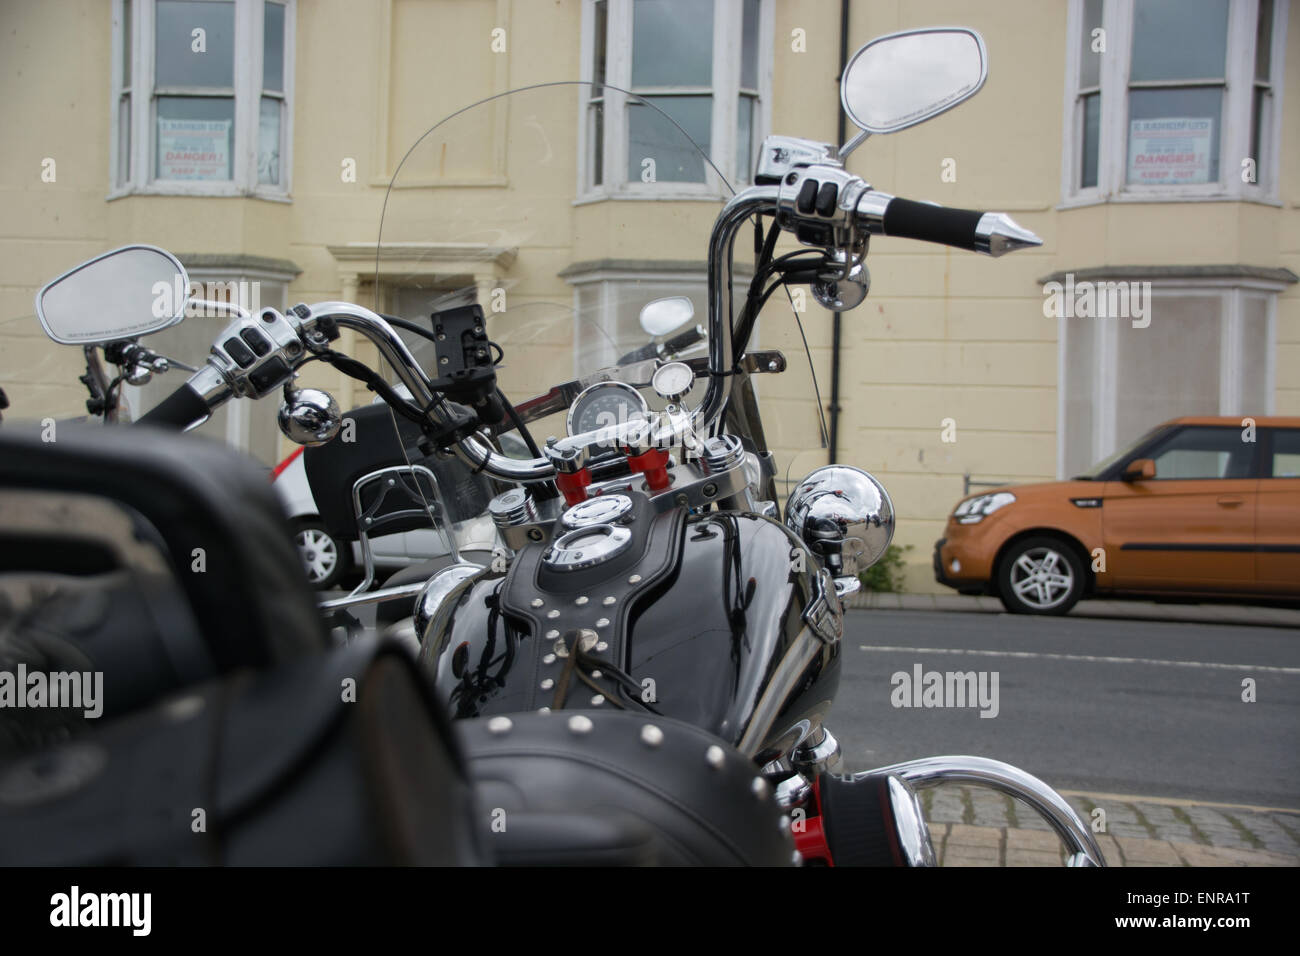 Harley Davidson Owners Club Visit to Aberystwyth - Stock Image